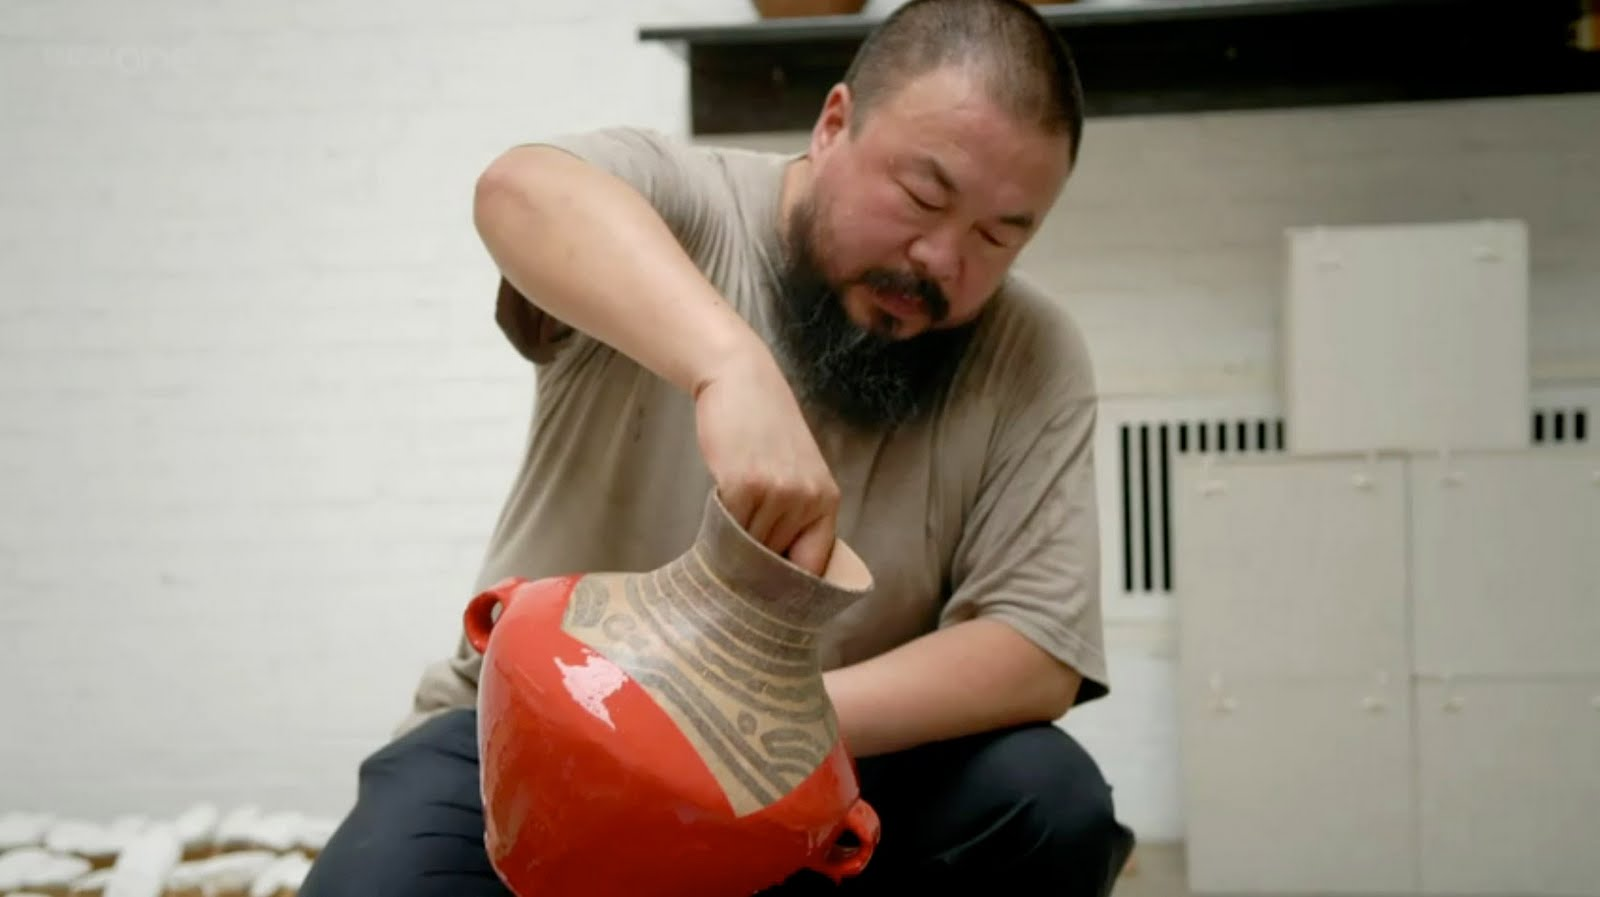 Portable antiquity collecting and heritage issues artist ai artist ai weiwei and the damage caused by antiquity collectors floridaeventfo Image collections